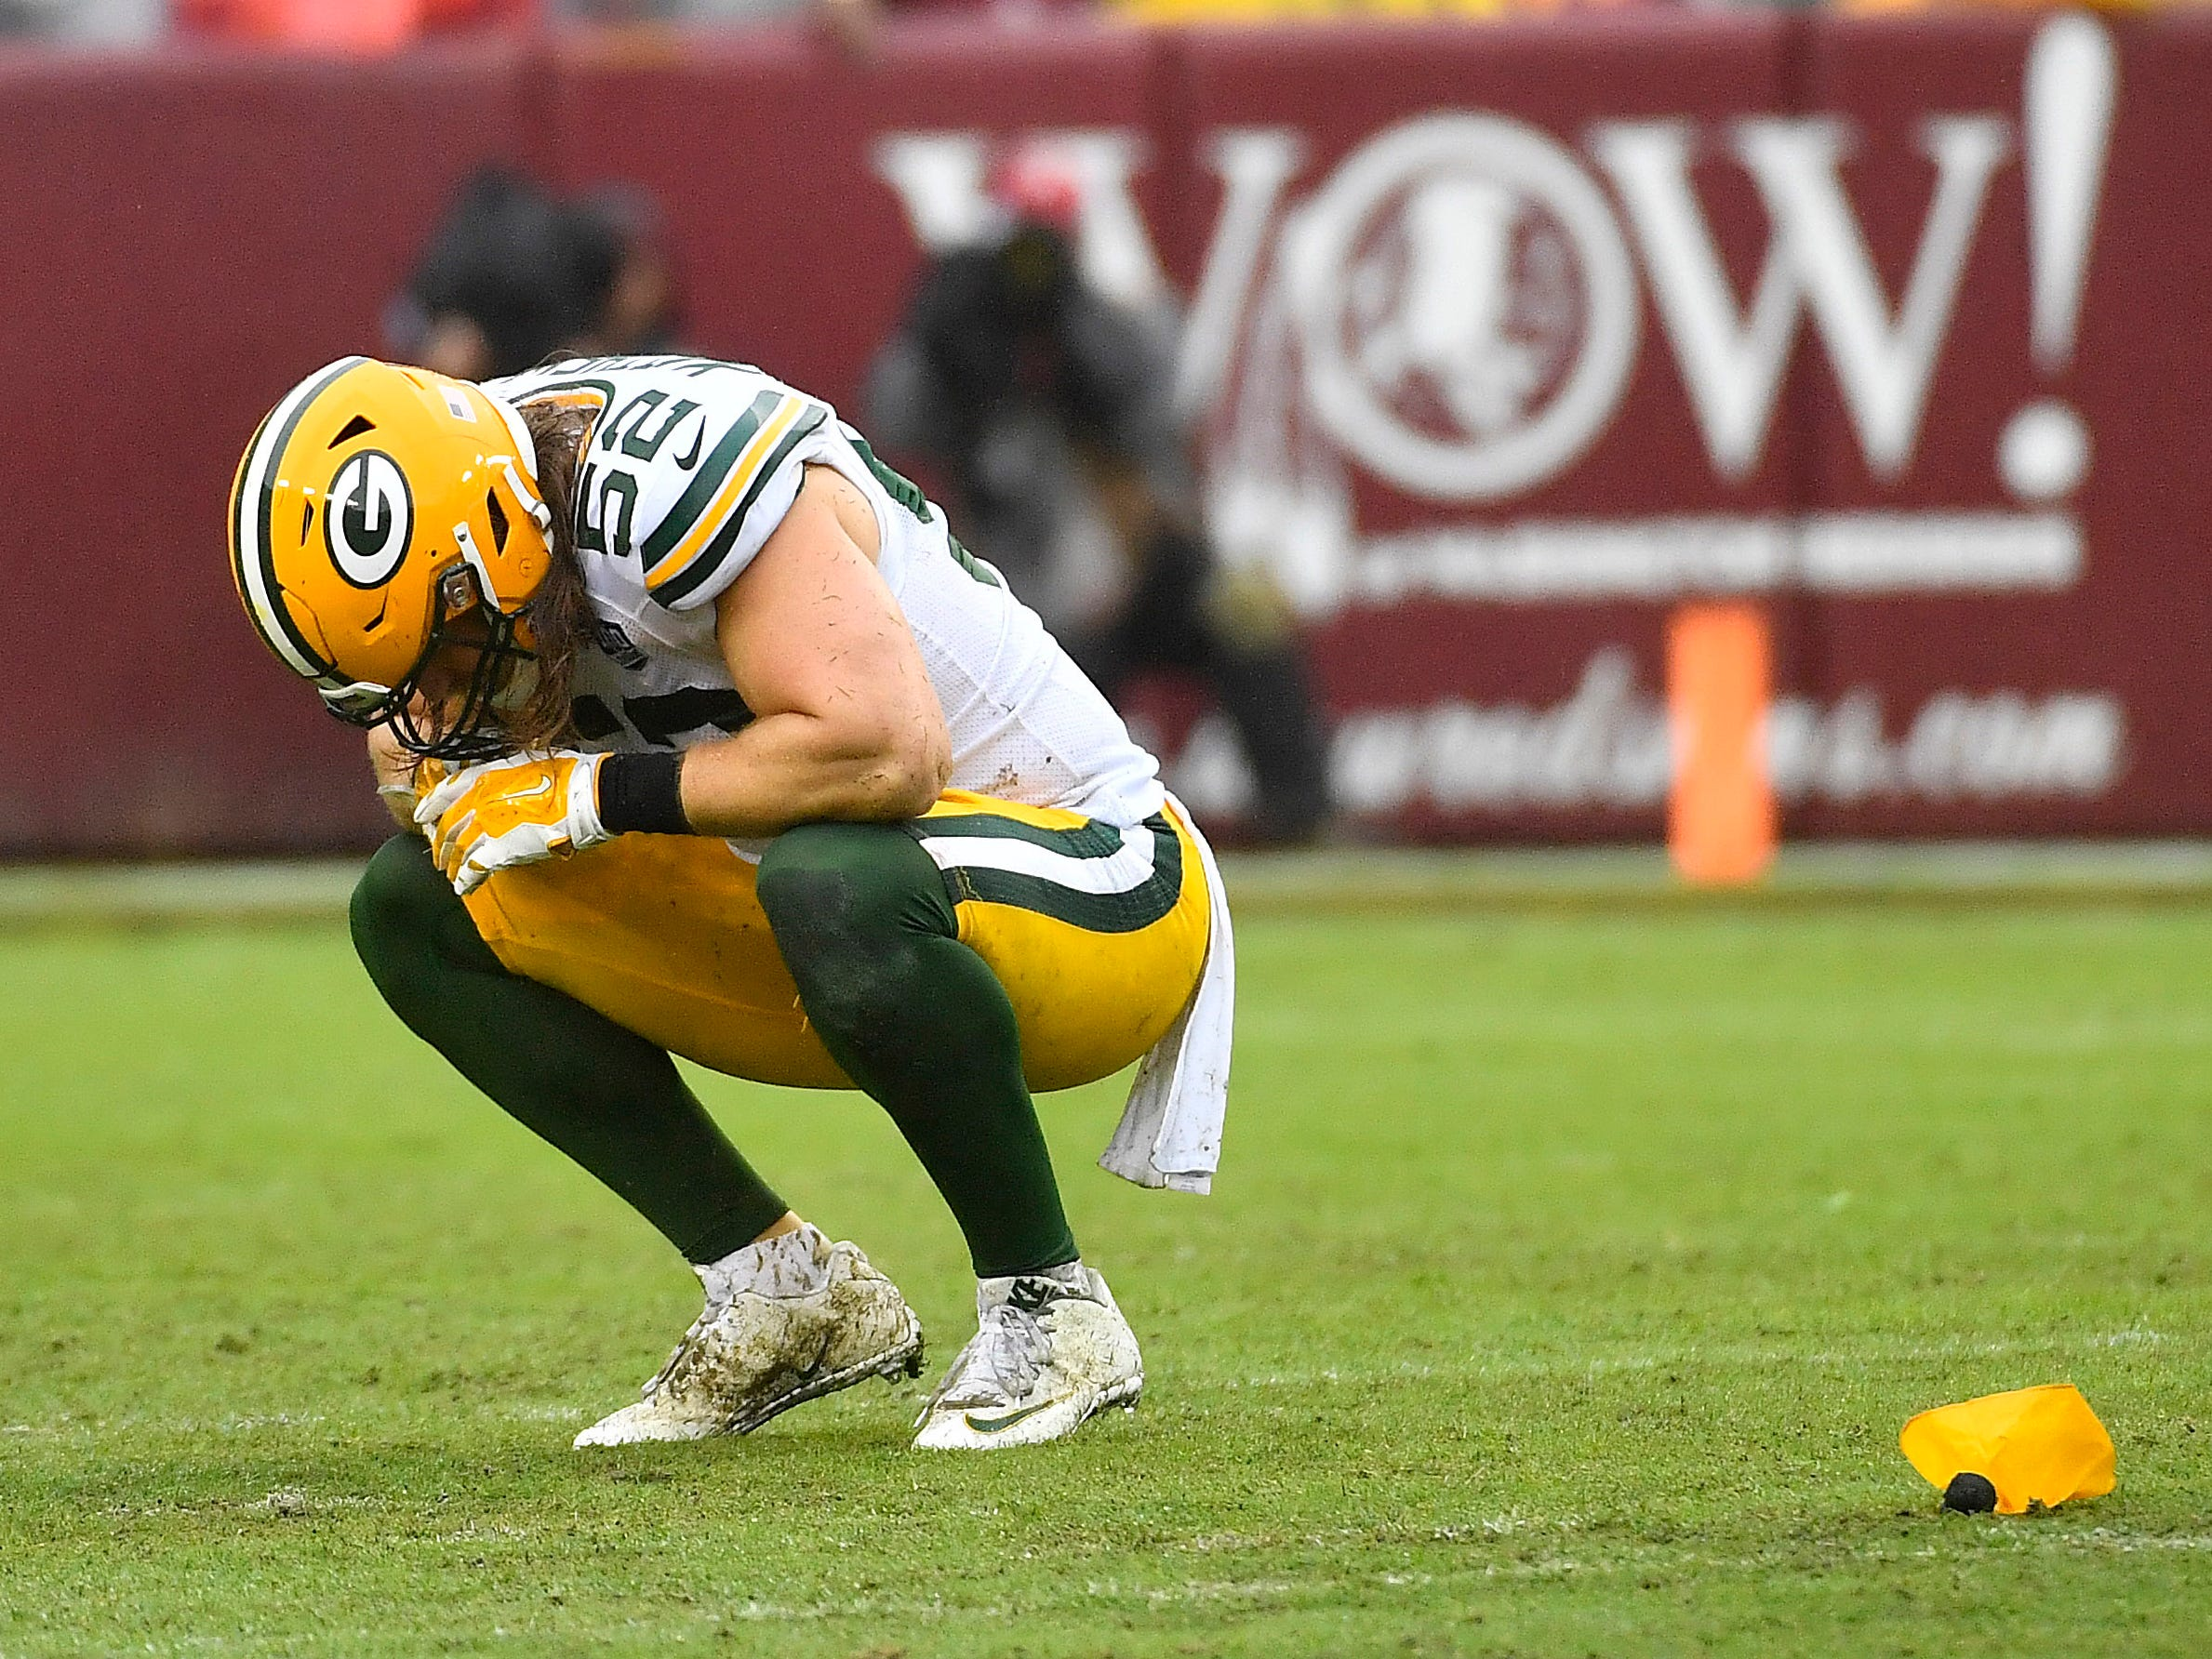 Green Bay Packers linebacker Clay Matthews (52) reacts after being called for a personal foul against the Washington Redskins during the second half at FedEx Field.